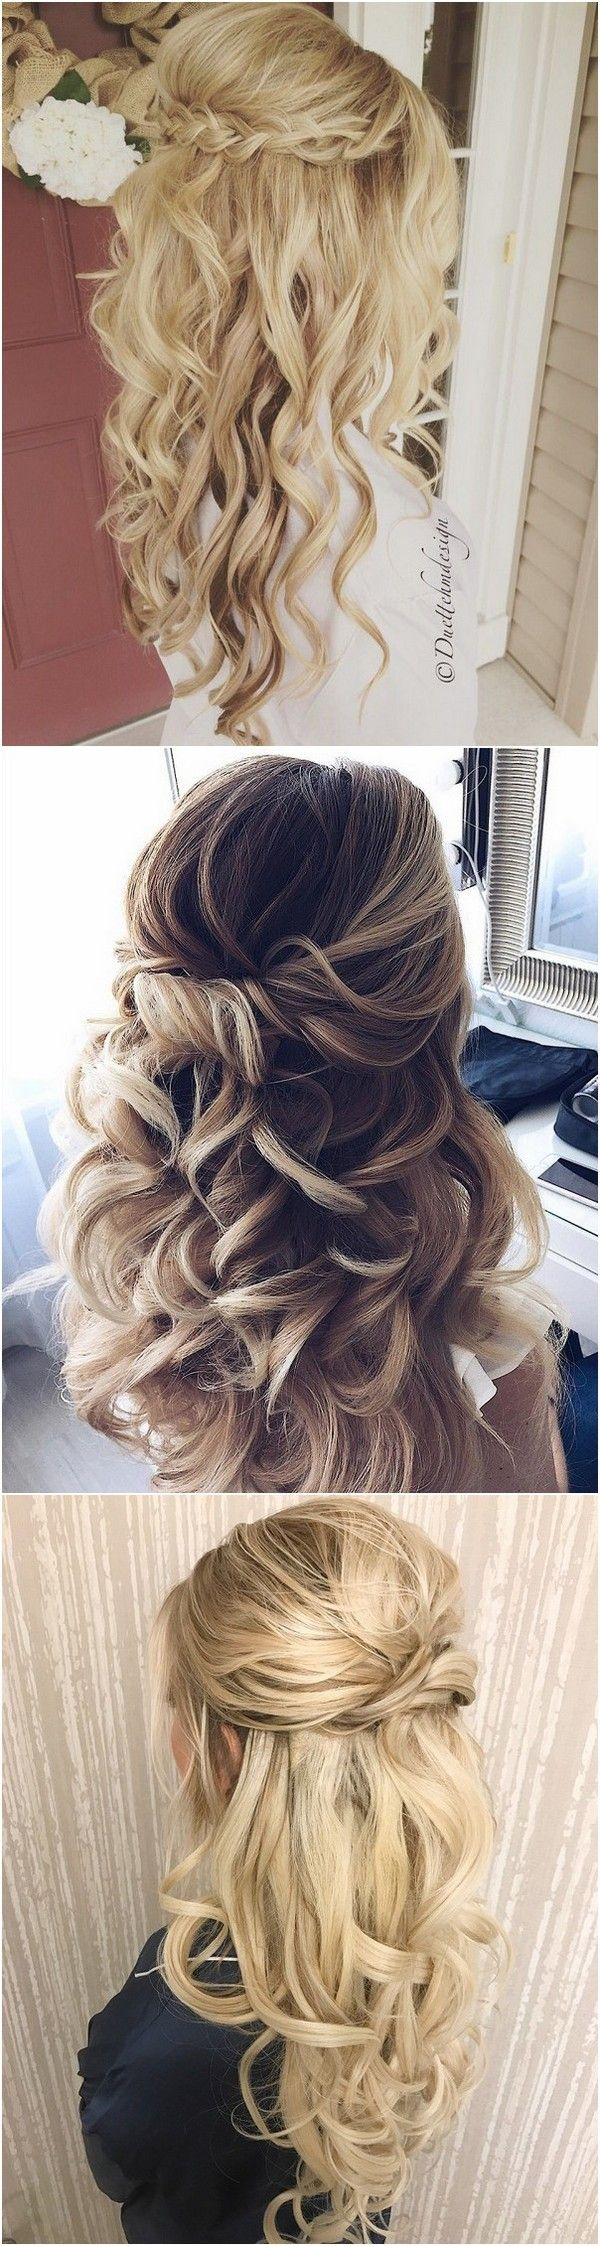 Top wedding hairstyles for trends weddings hair style and